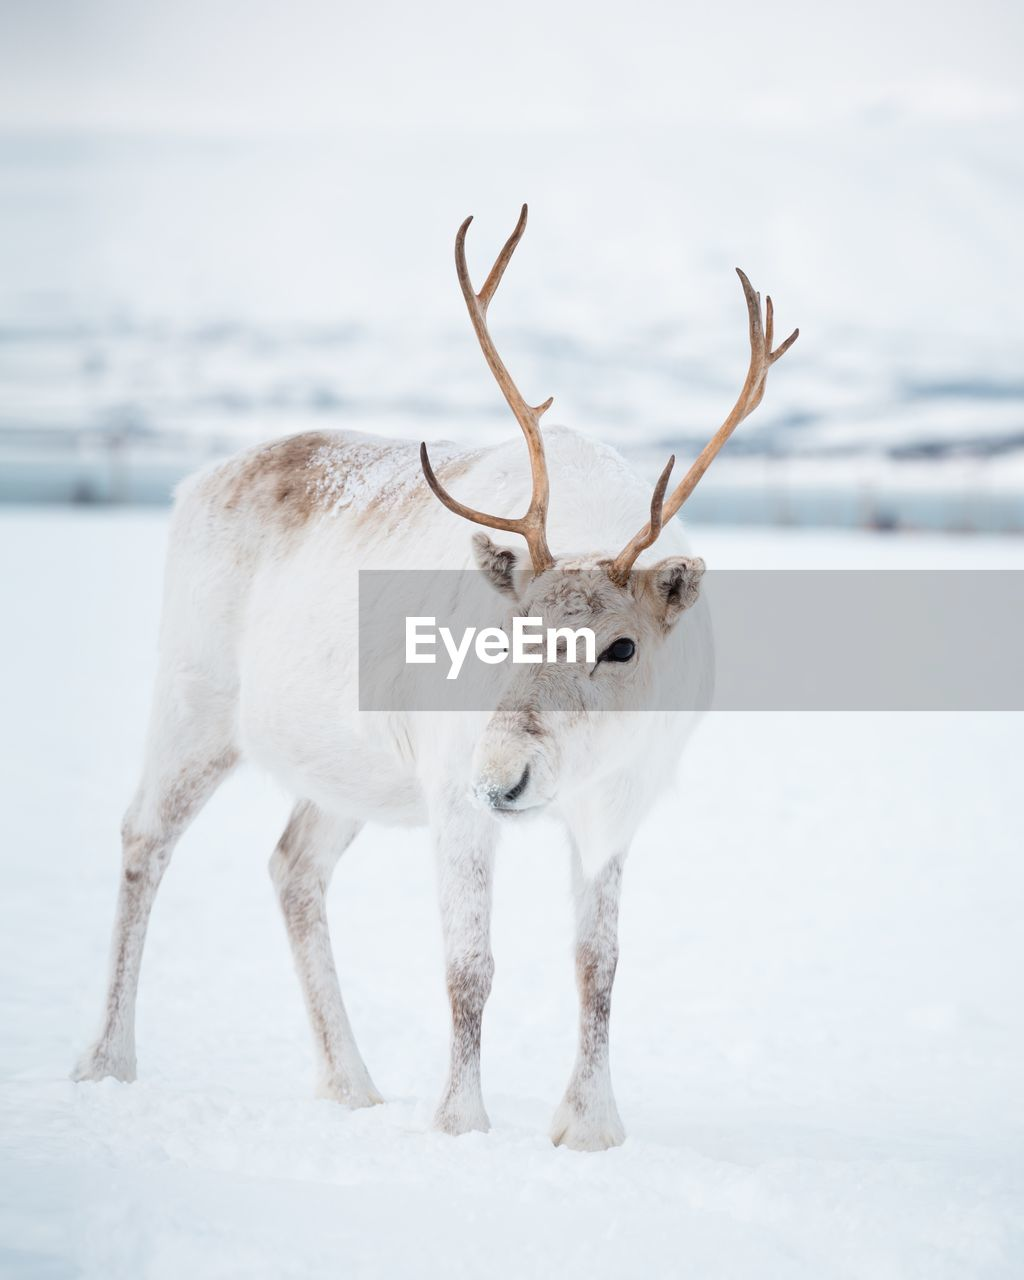 White deer standing on snow covered land